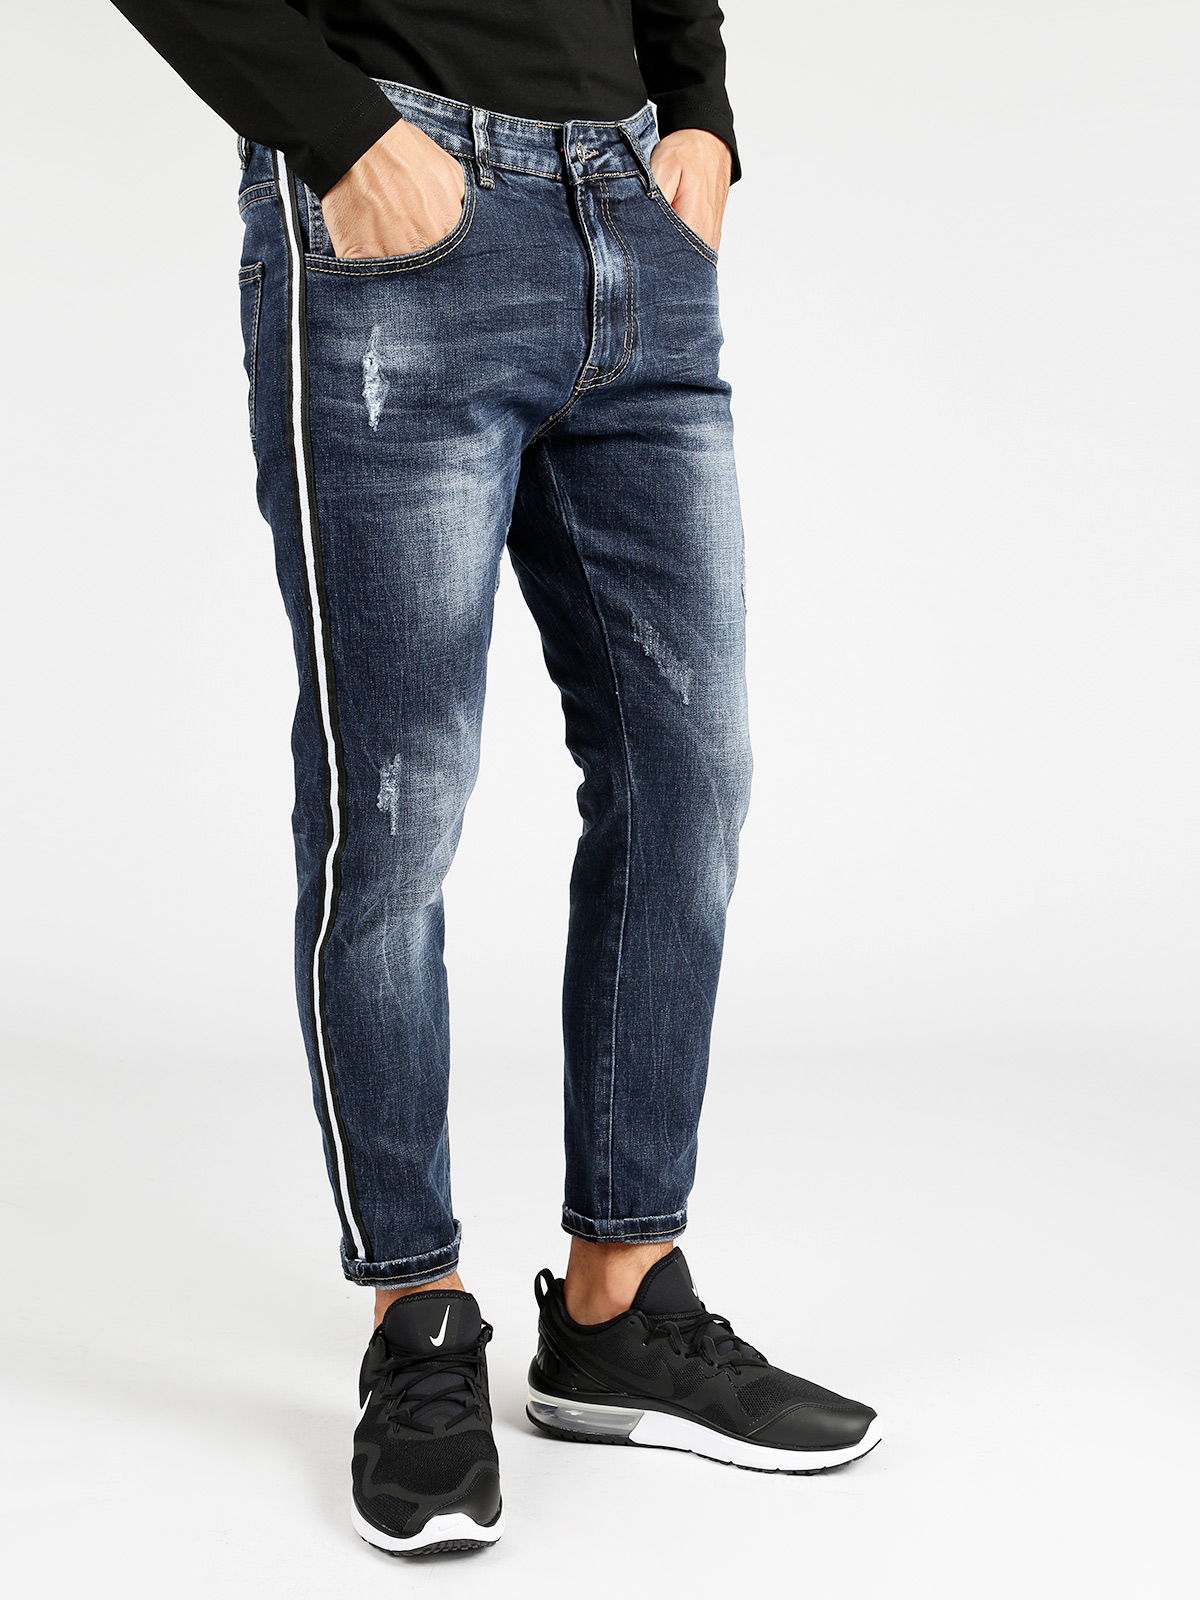 Jeans With Side Stripes And Tearing